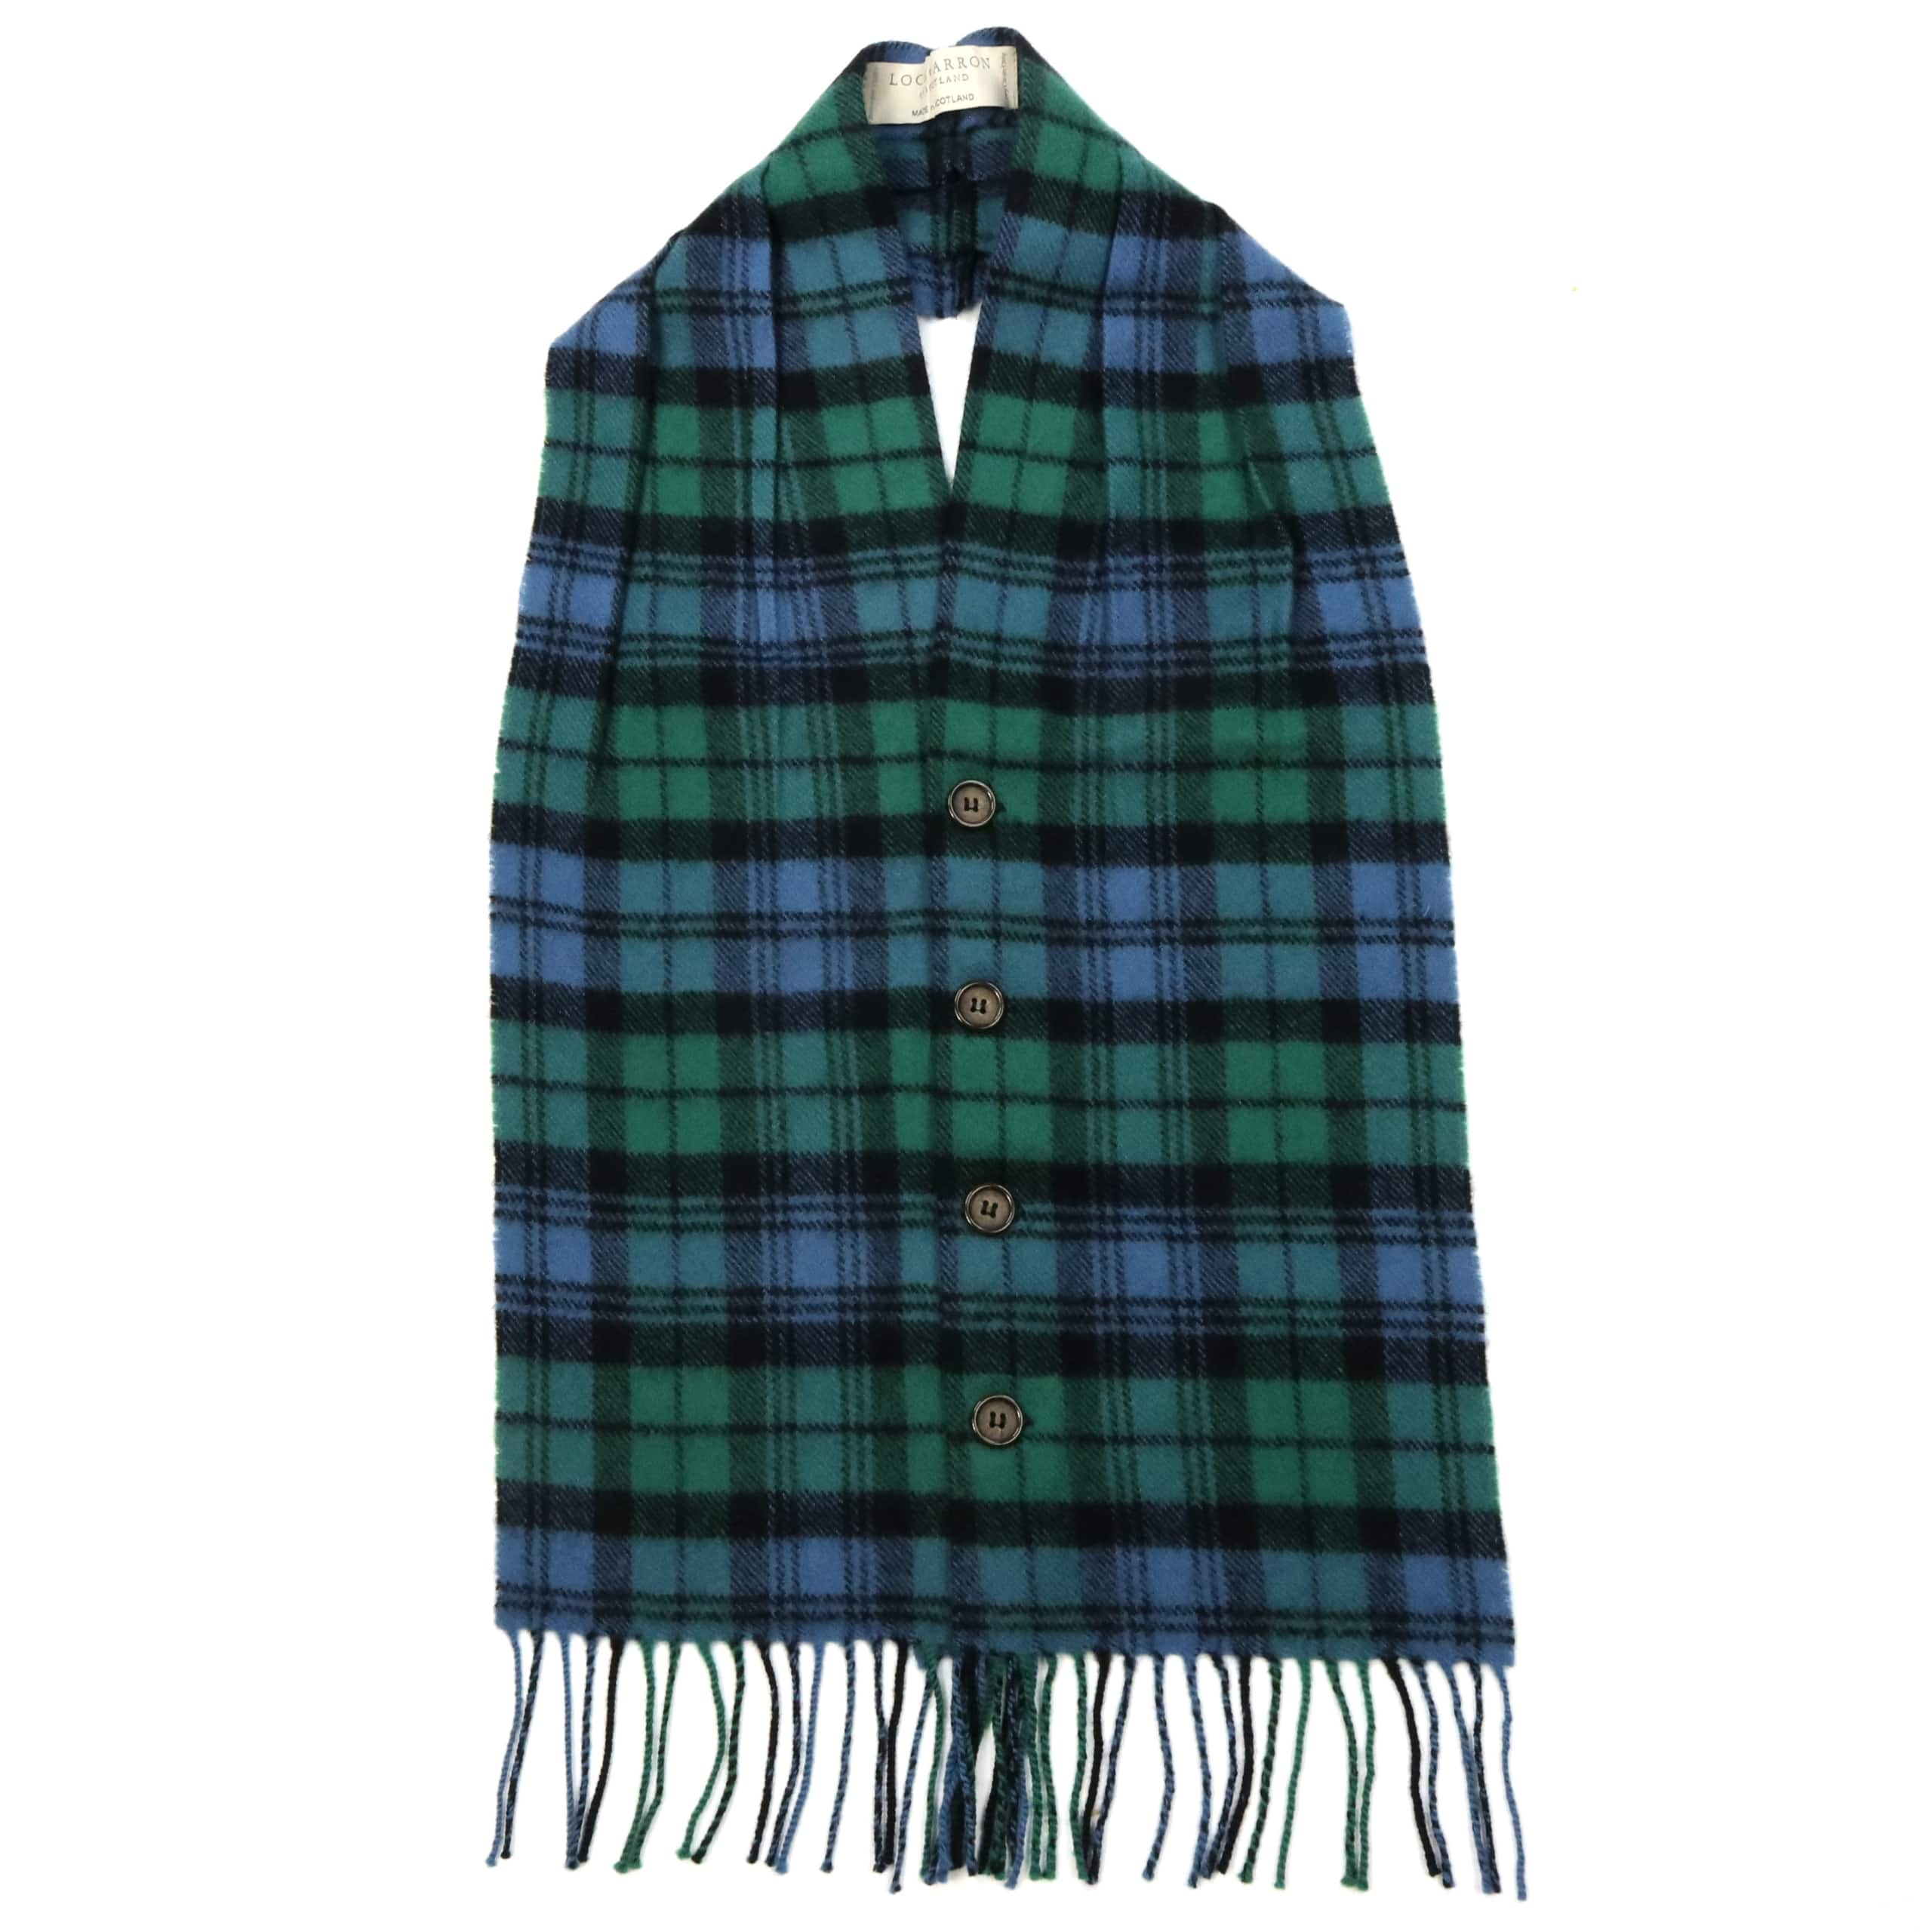 Elliot Modern Tartan 100/% Lambswool Clan Scarf Made in Scotland